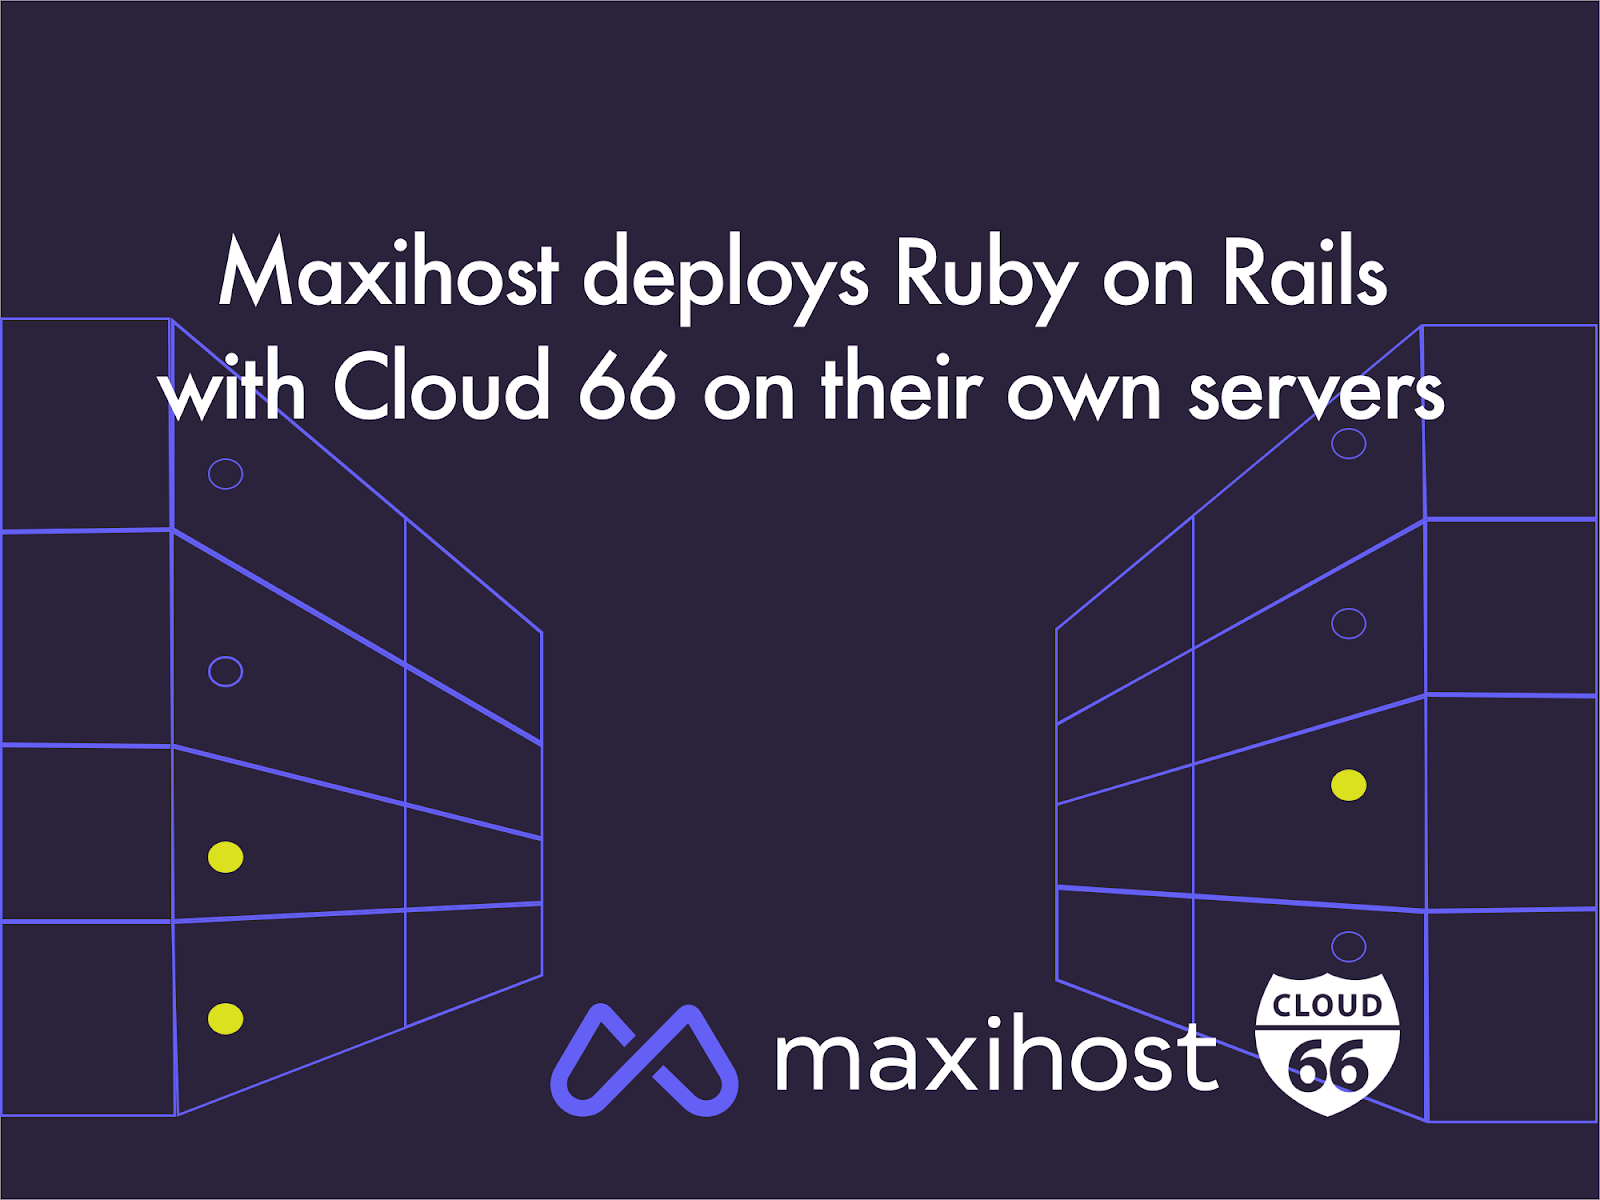 Bare Metal Cloud platform Maxihost deploys Ruby on Rails on their own servers with Cloud 66